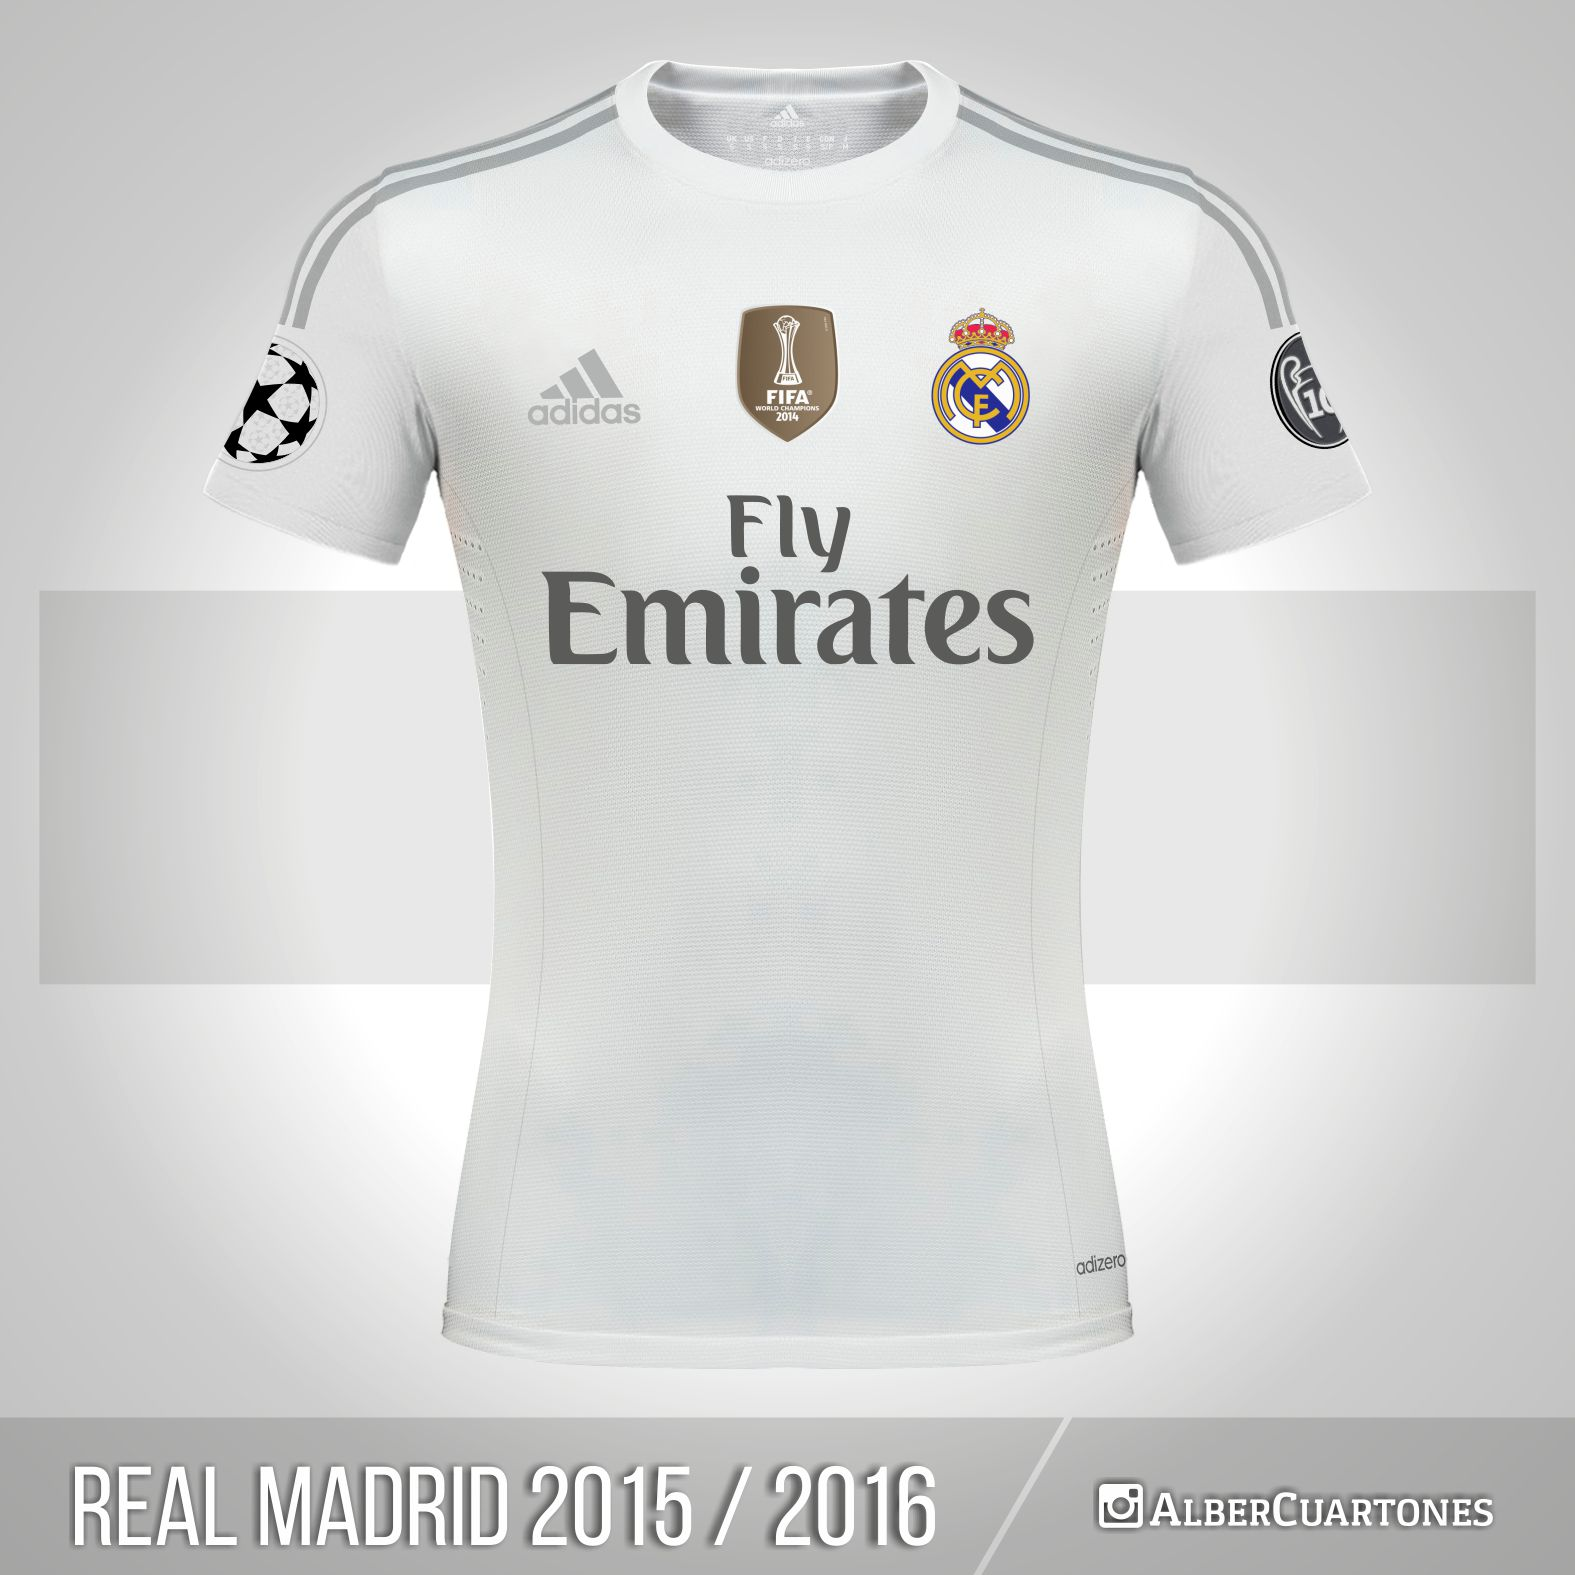 757024bee Real Madrid 2015   2016 Home Shirt (according to leaks)